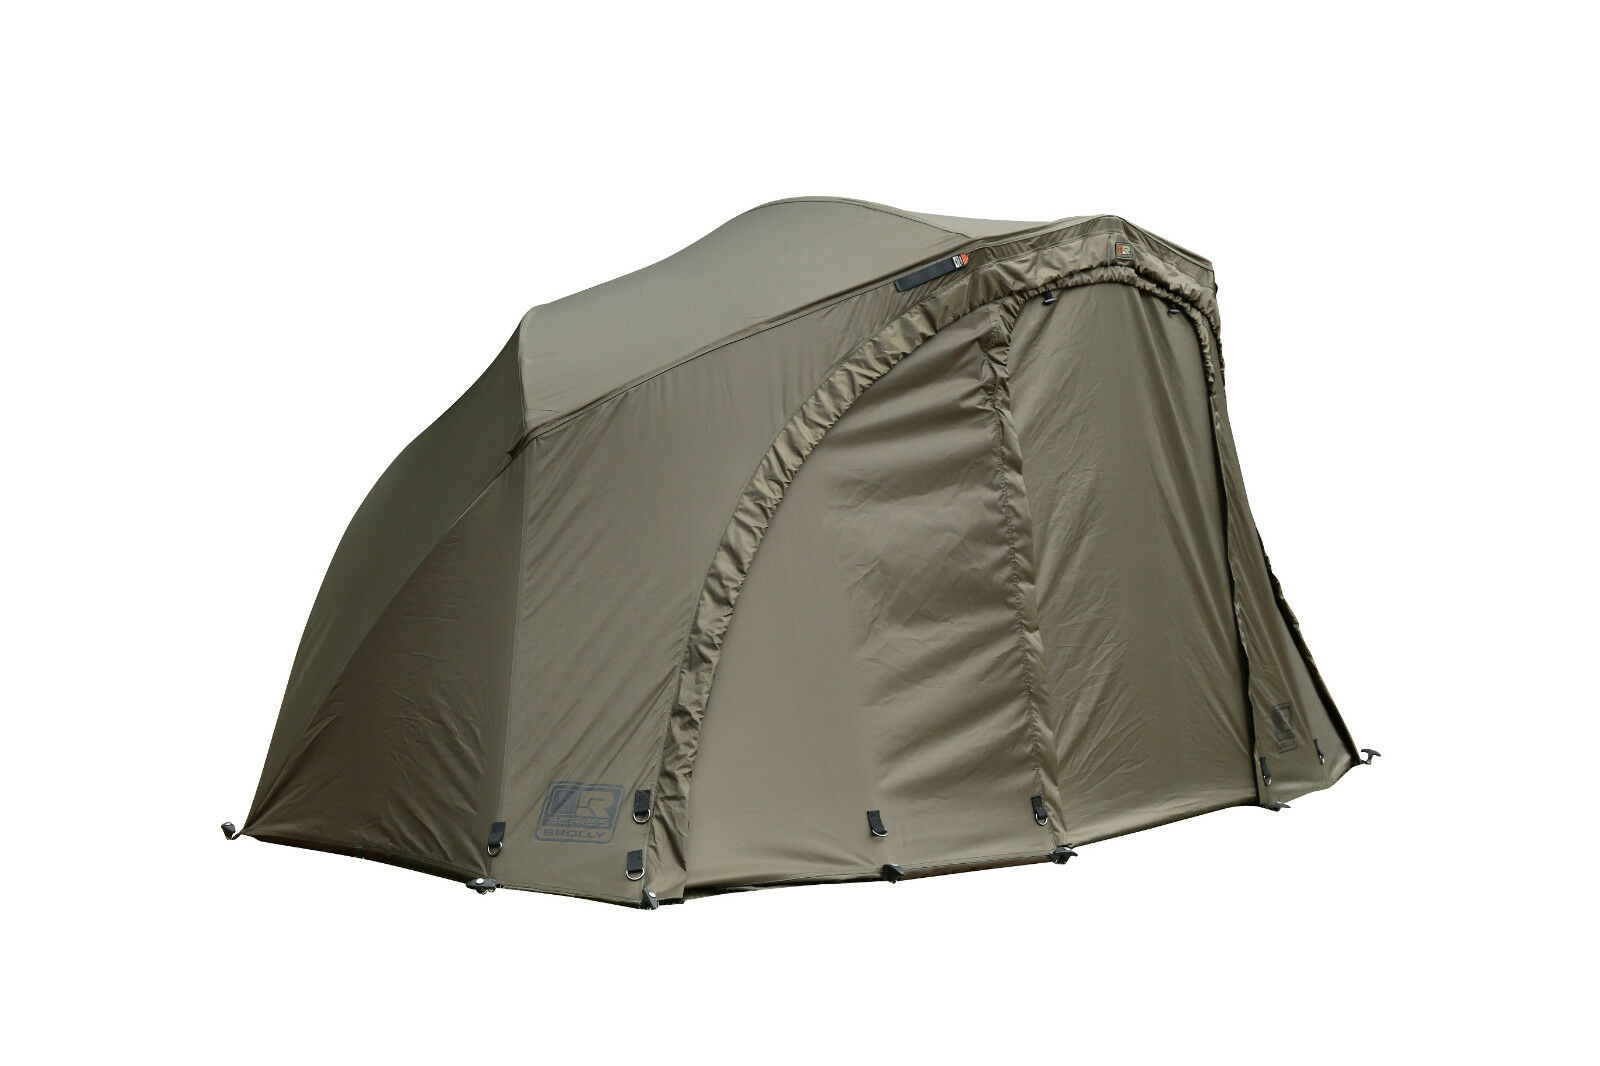 Fox R Series Brolly System cum259 brollie OVALE Shelter ombrello tenda OMBRELLONE